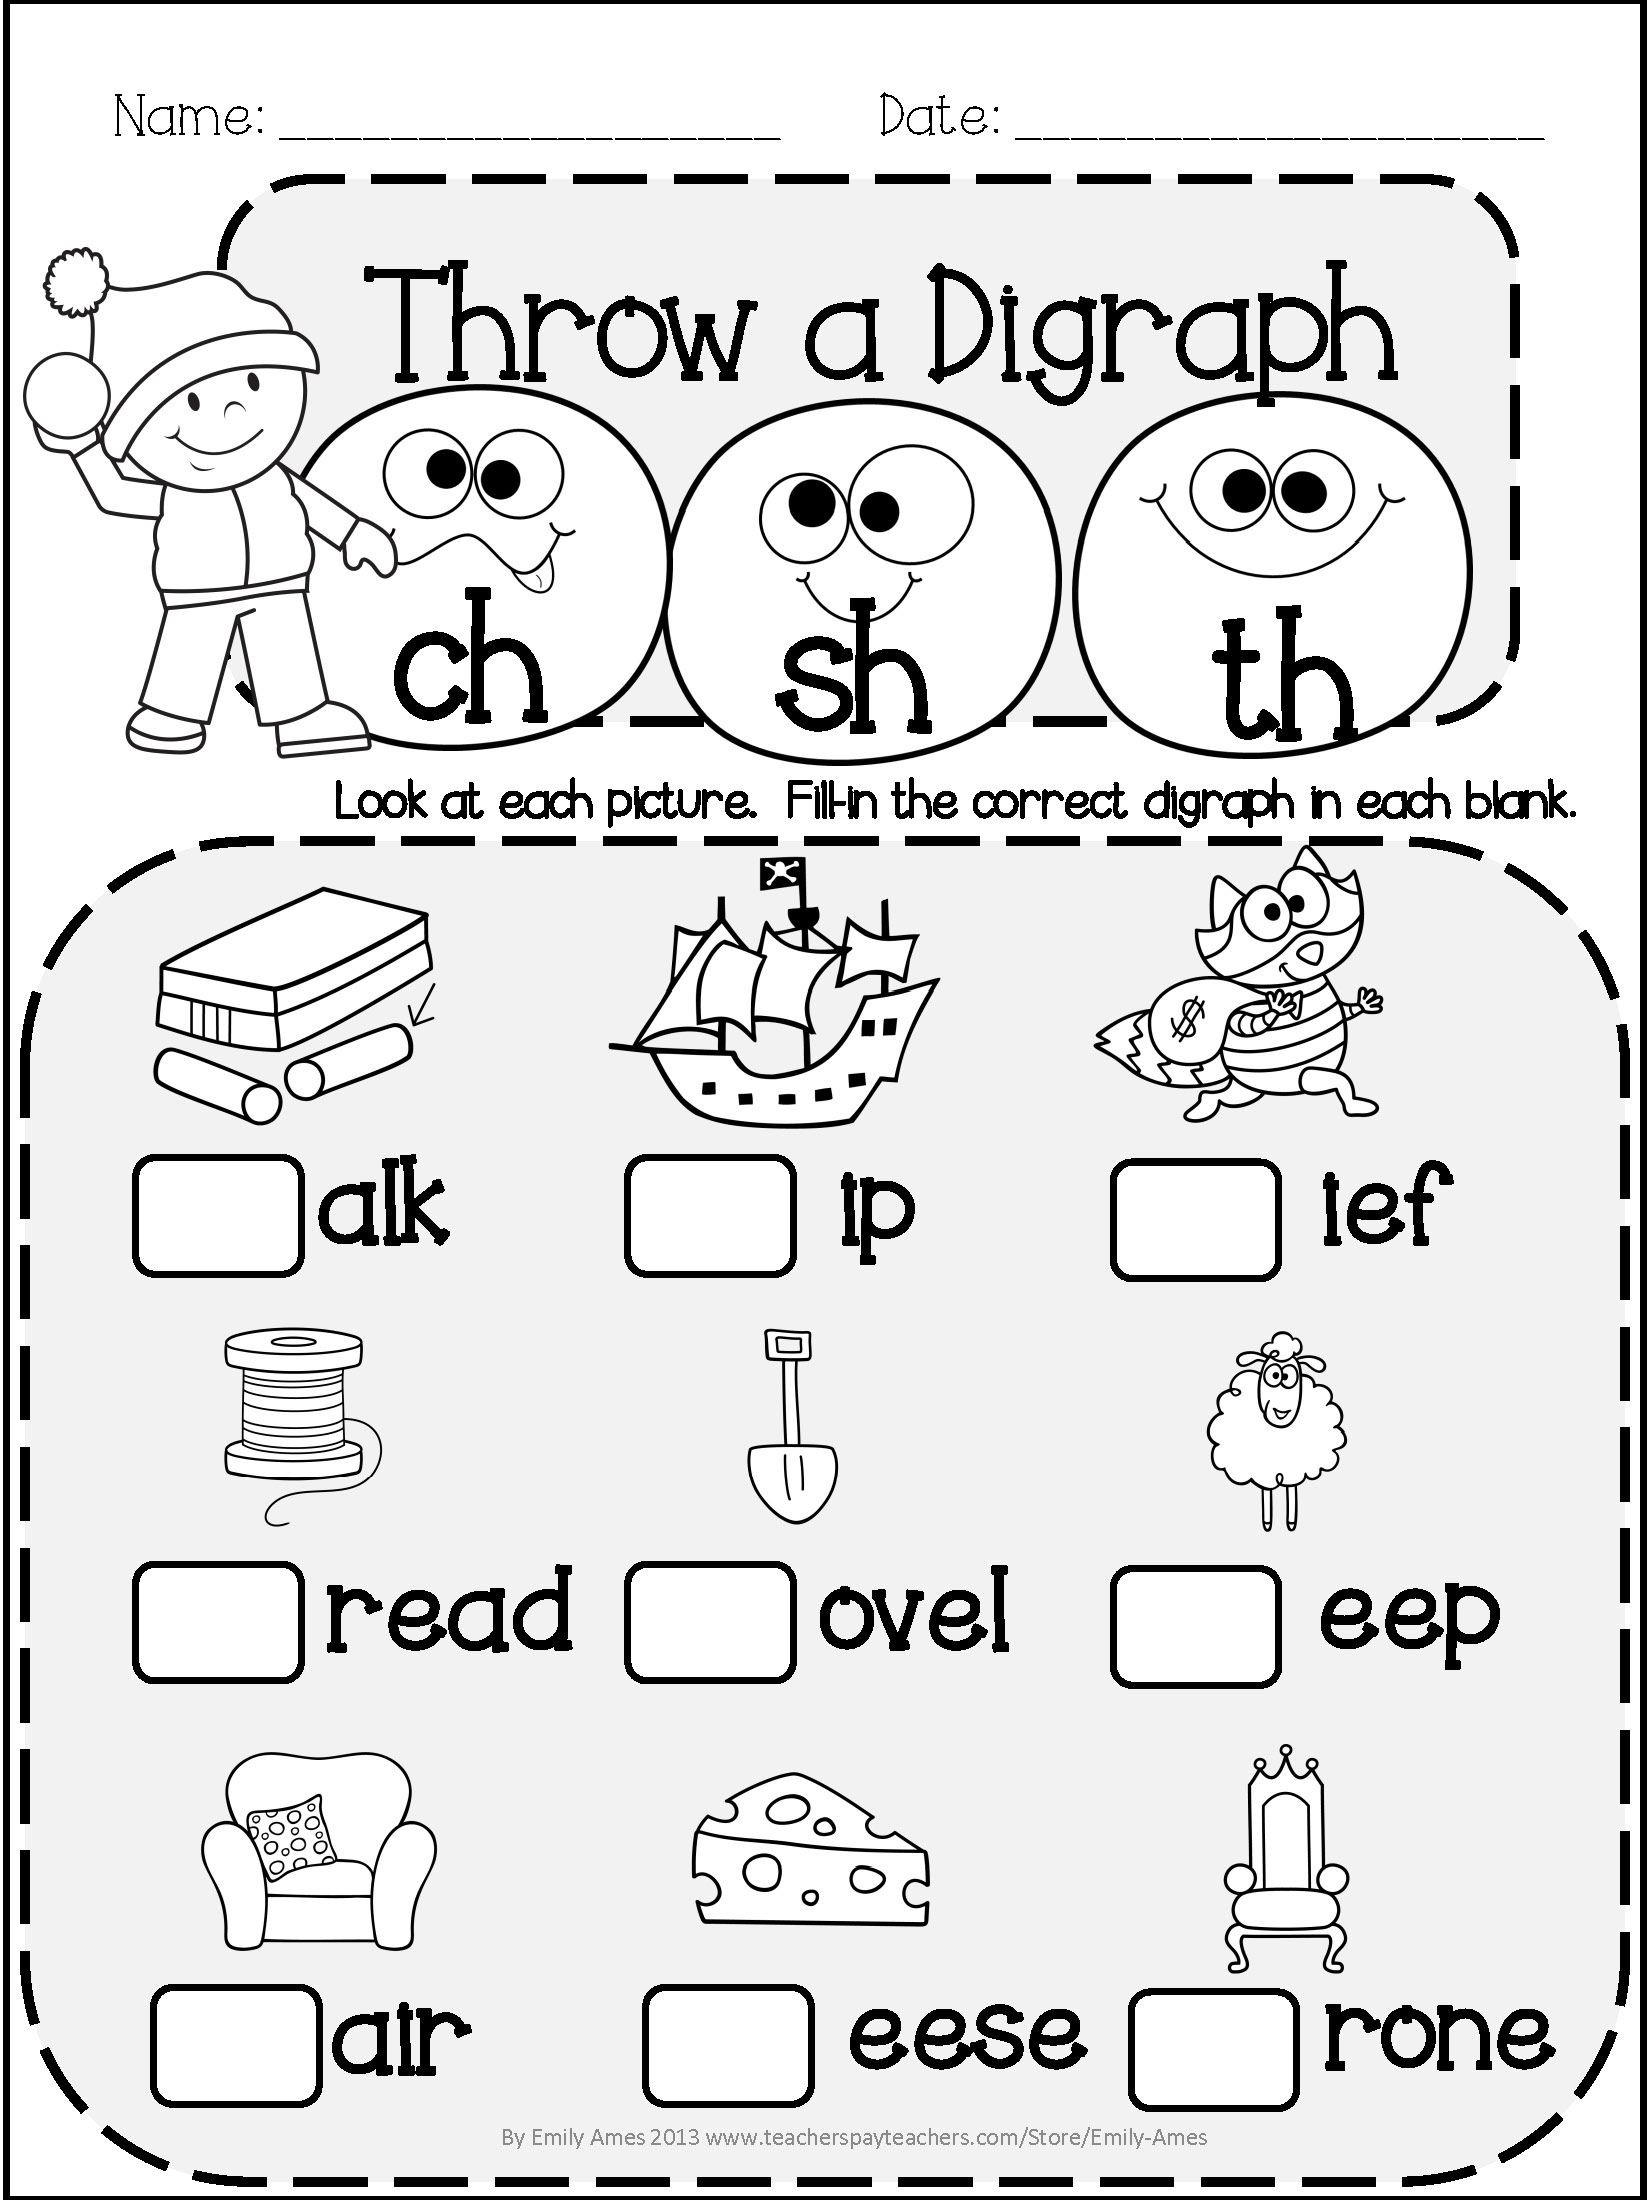 2nd Grade Consonant Blends Worksheets Counting Coins and Bills Worksheets Page 2 S Consonant